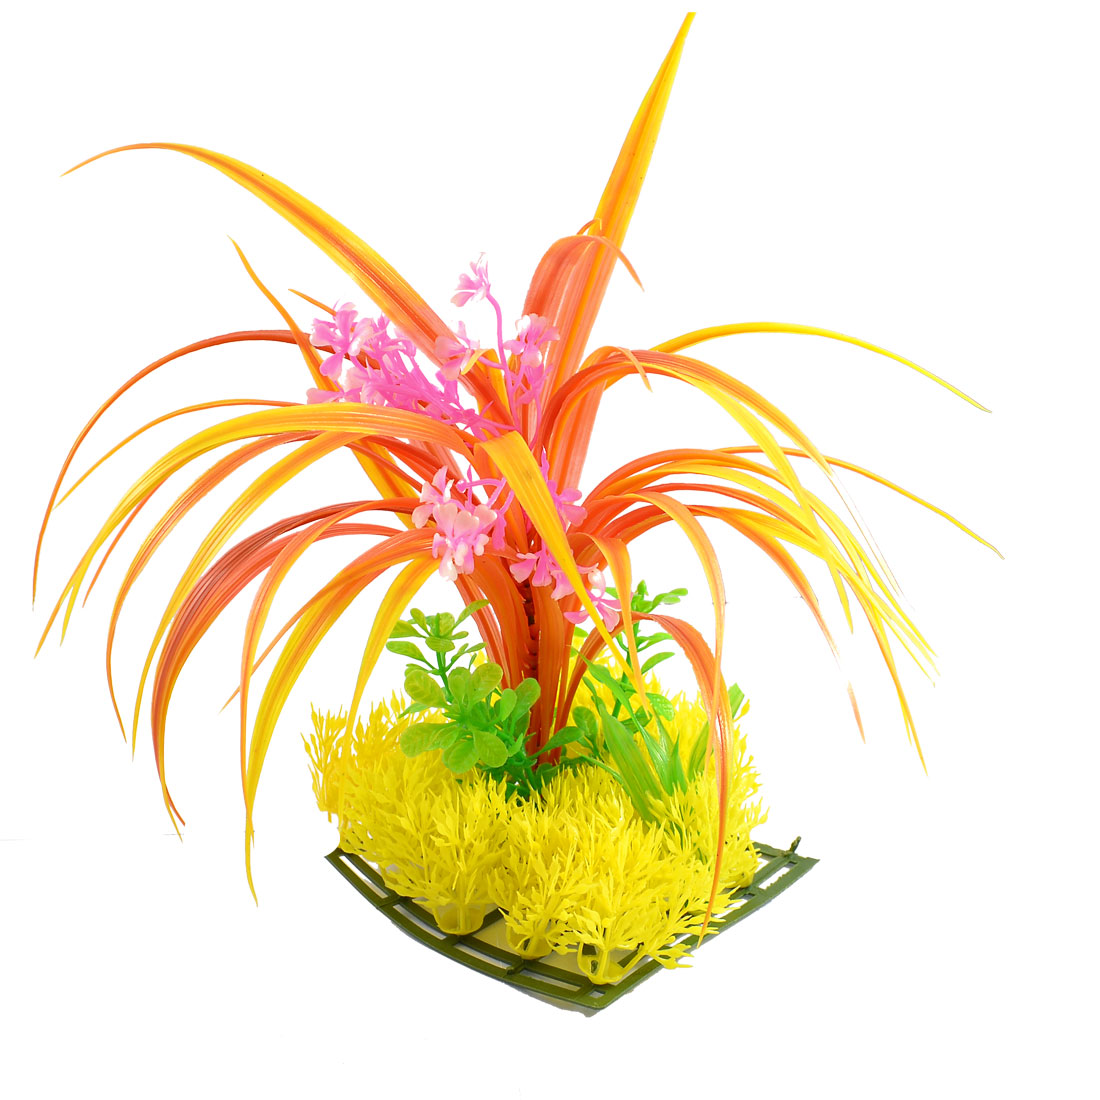 Aquarium Emulational Orange Plants Detail Yellow Square Lawn Decoration